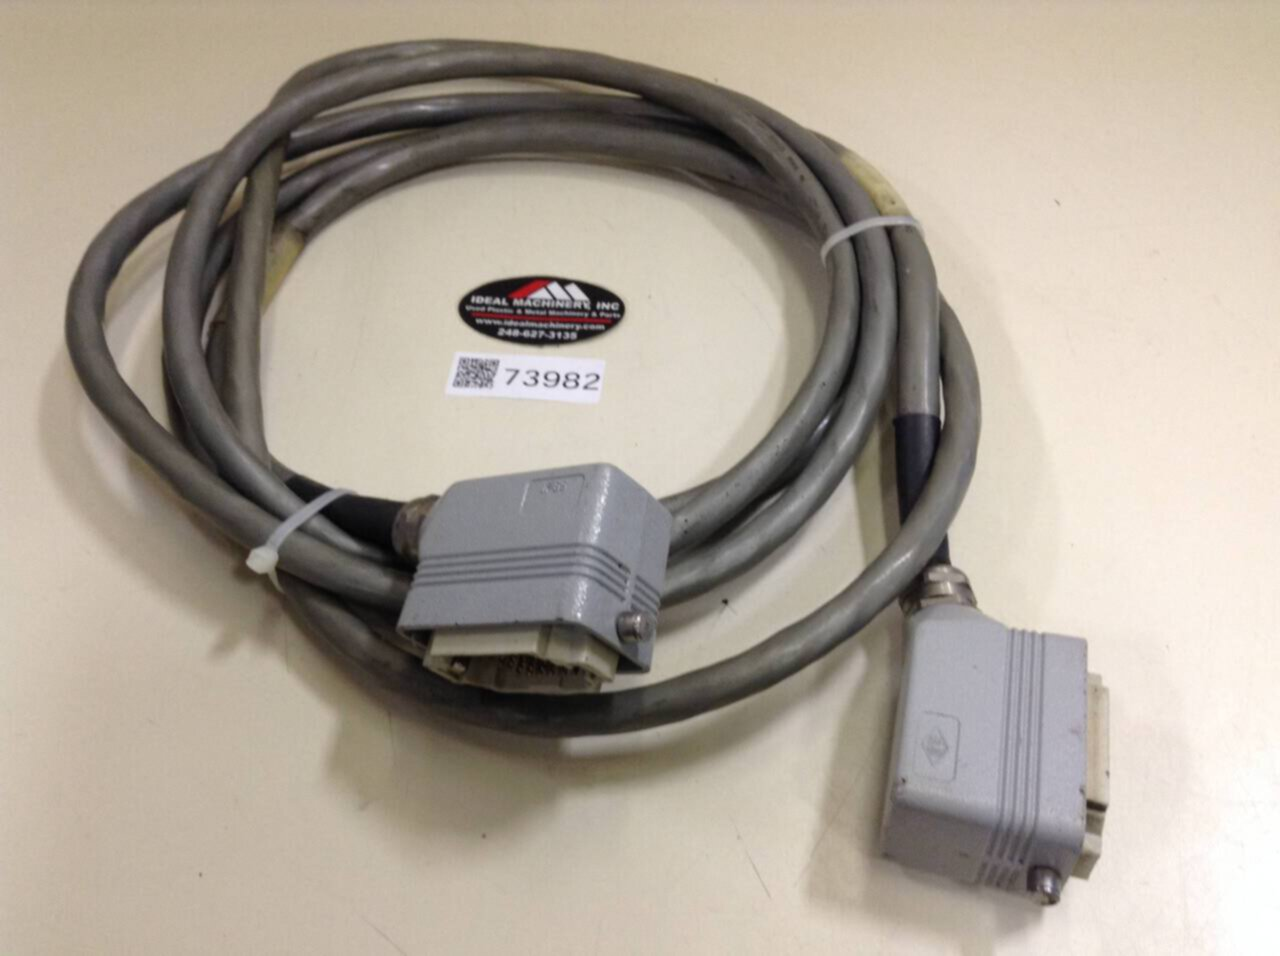 Details about  /JIC ELECTRIC Cable A460-3K4K-8016-E40 Used #71057